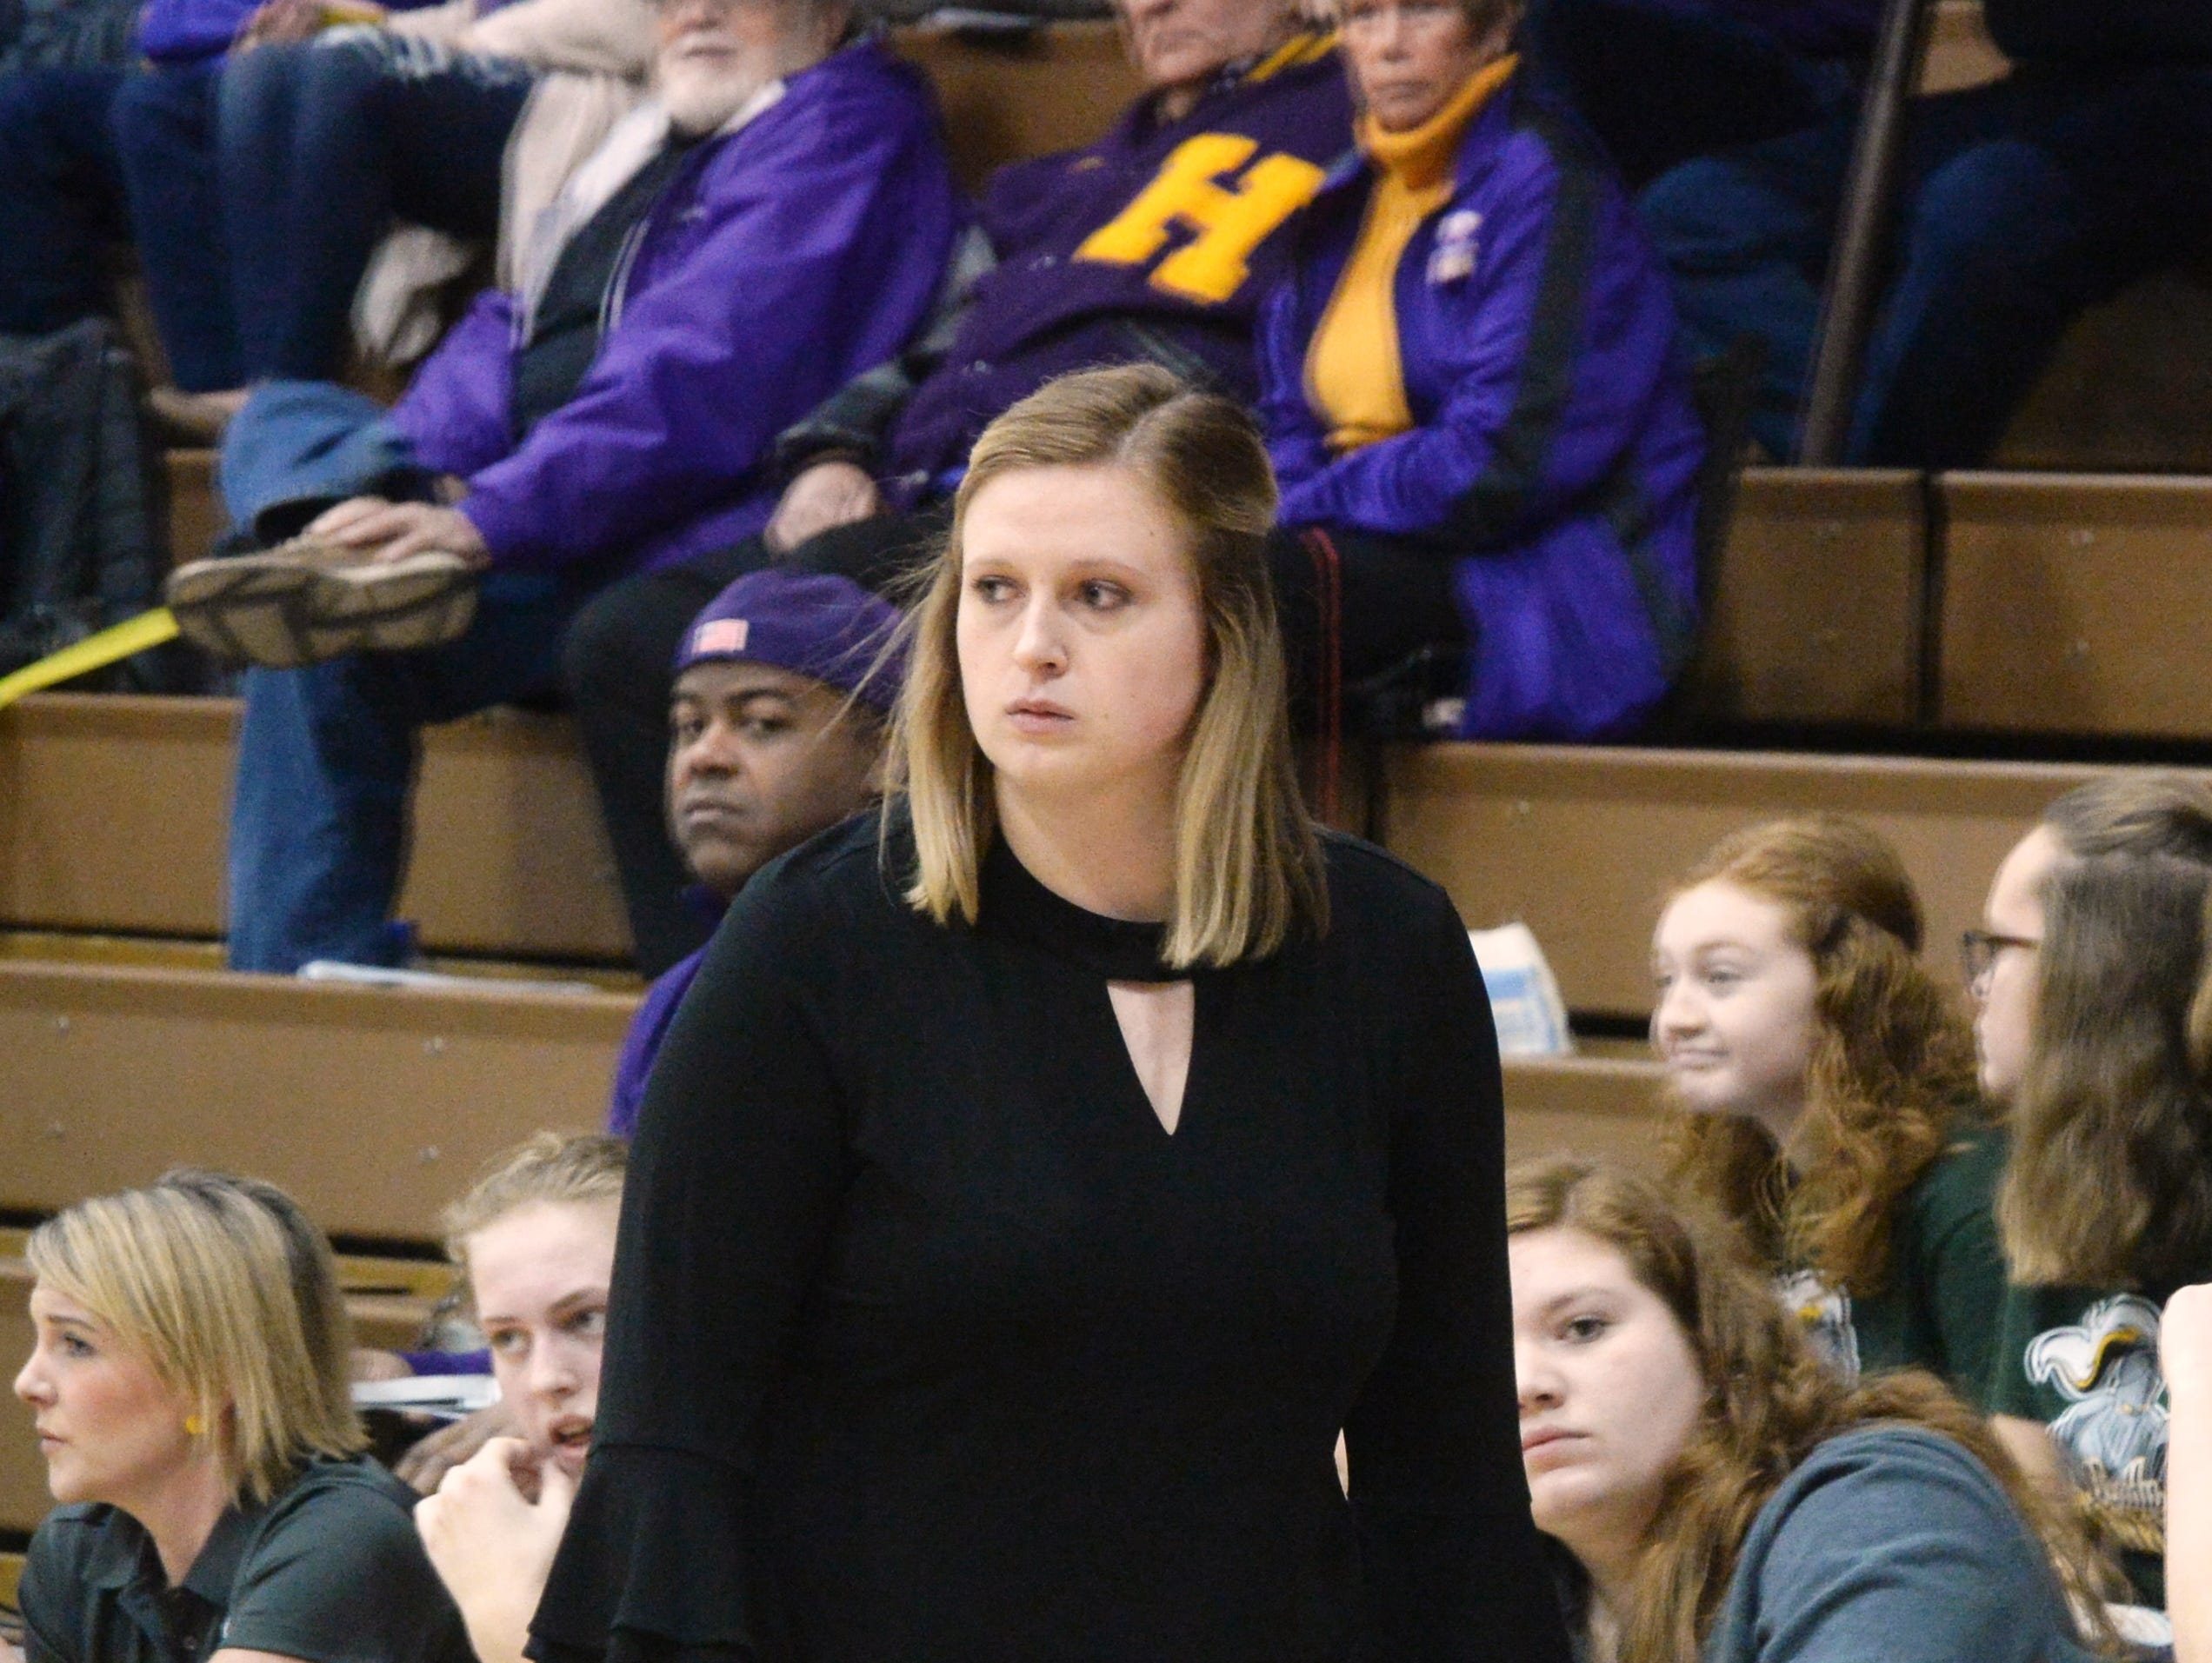 Northeastern girls basketball coach Sara Mayo during the Wayne County girls basketball championship at Hagerstown Saturday, Jan. 5, 2019. Hagerstown defeated Northeastern 37-35 to win the girls' title, and Northeastern beat Hagerstown 60-49 in the boys championship.